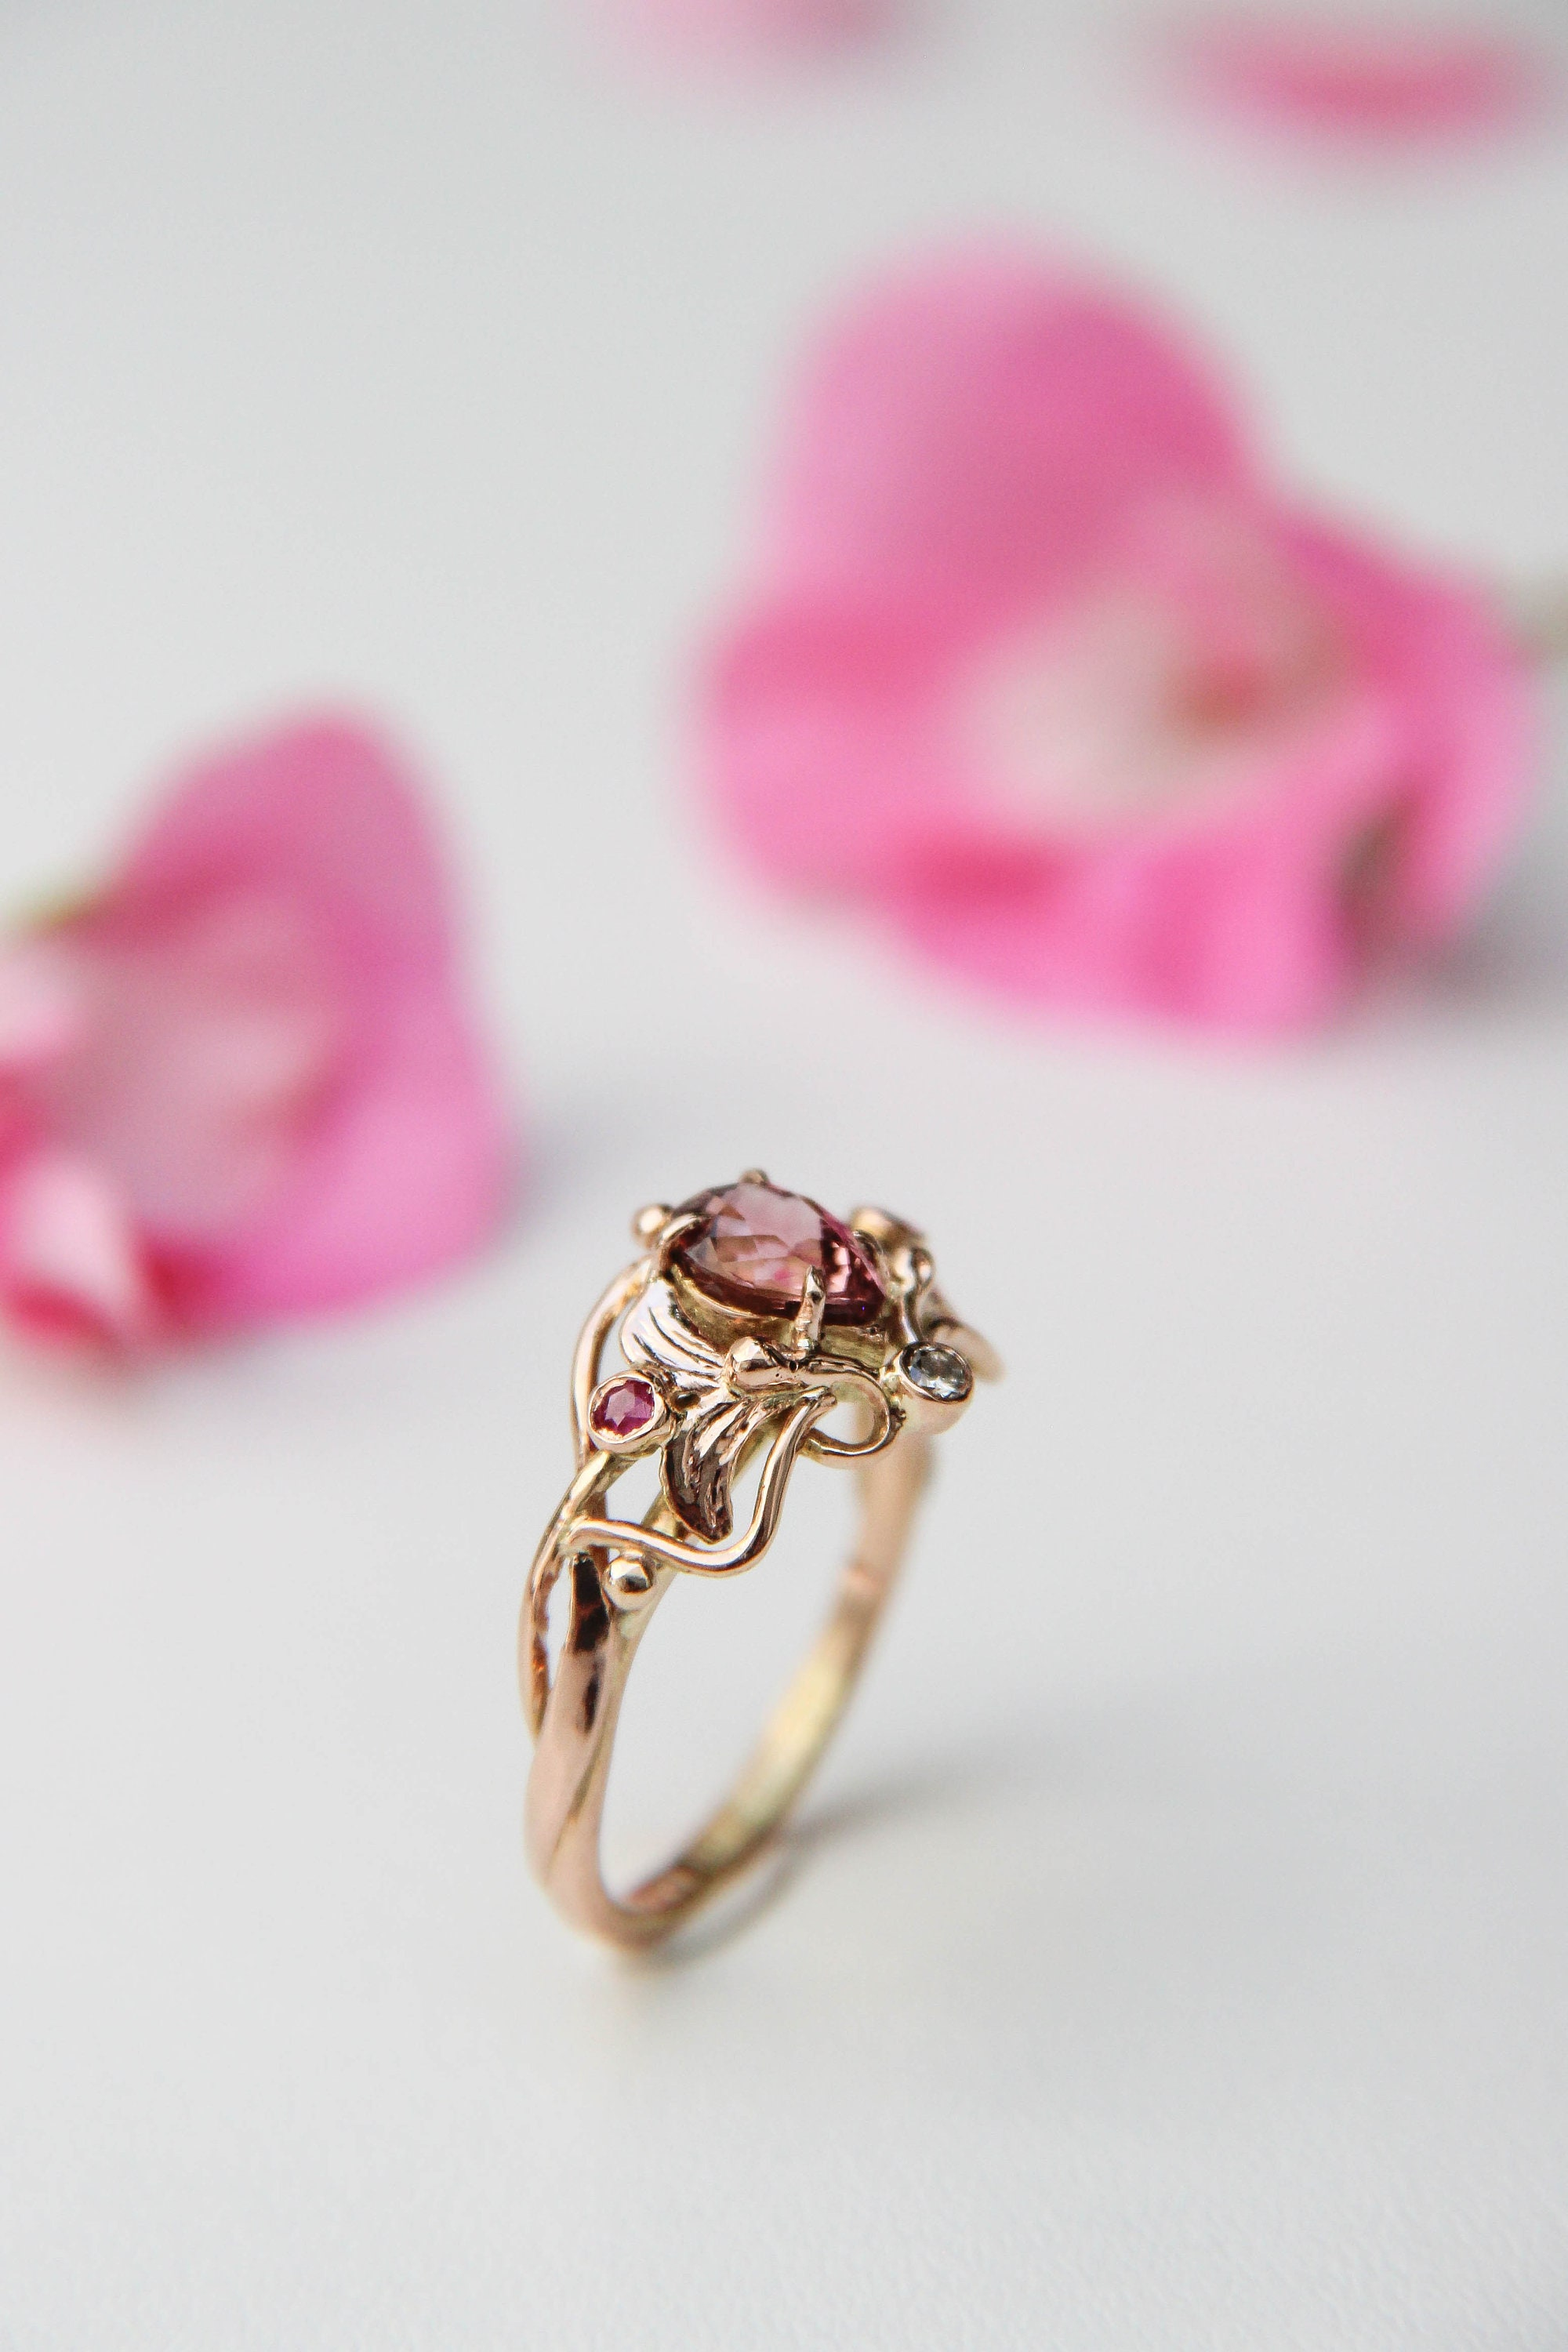 Vintage inspired art nouveau engagement ring with pink tourmaline ...